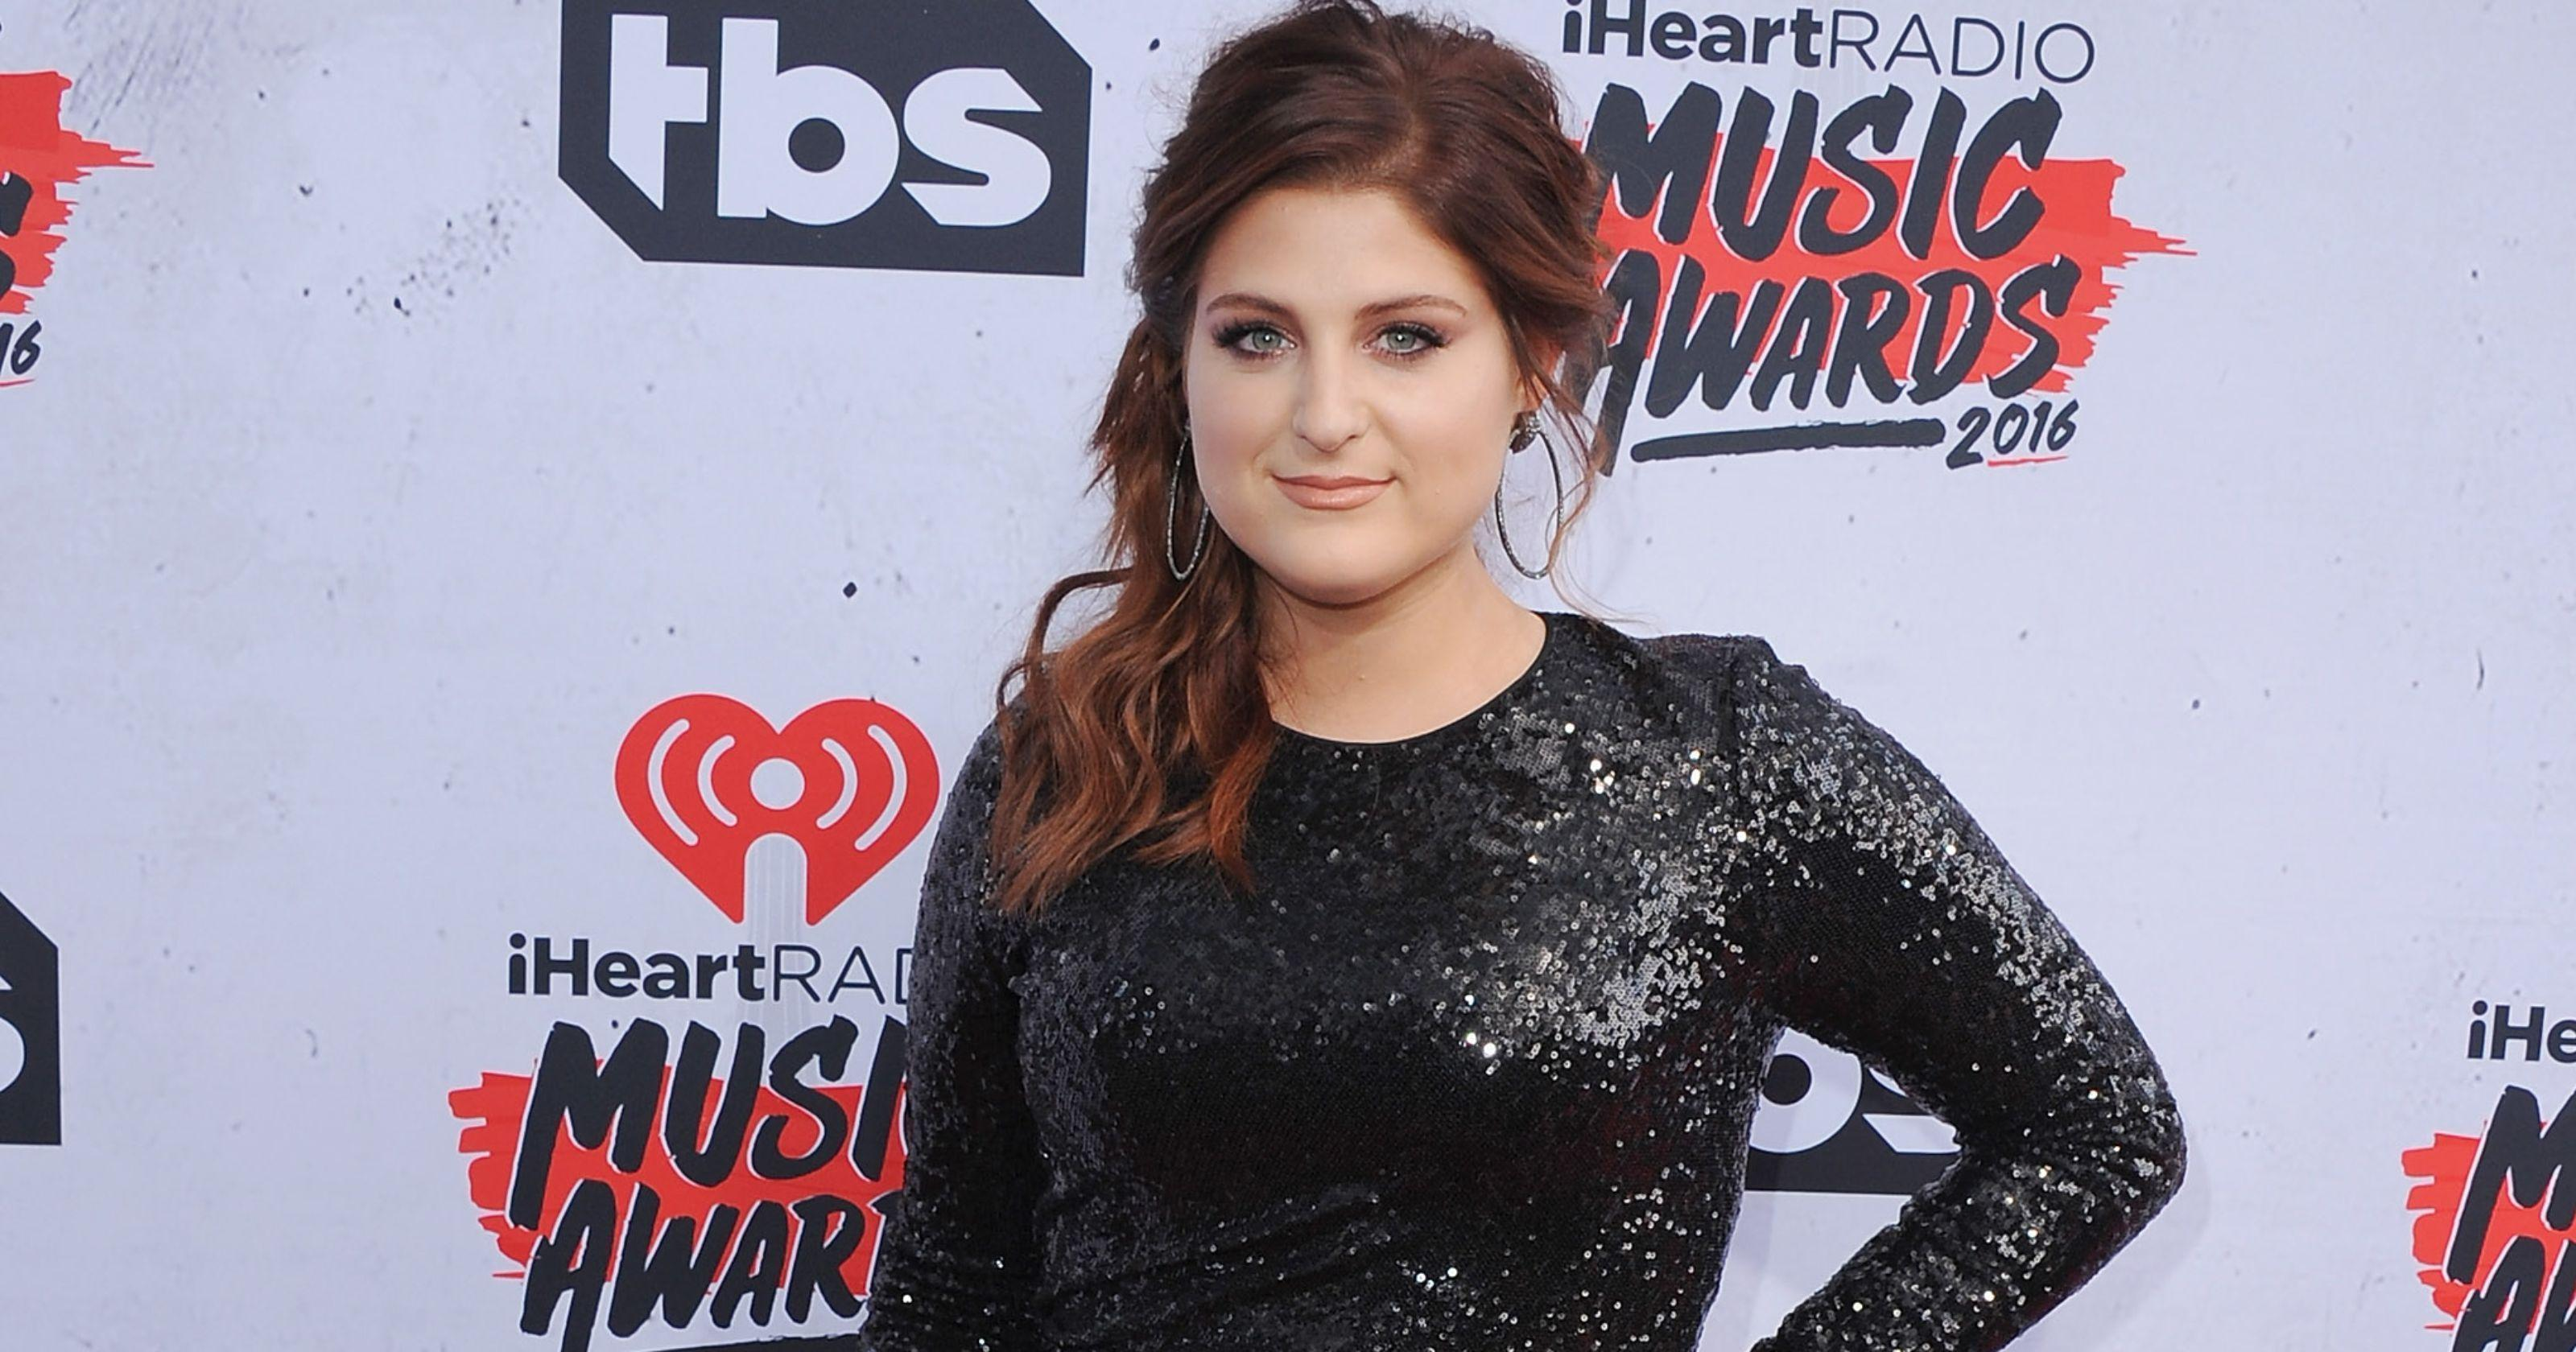 Meghan Trainor Wallpapers Images Photos Pictures Backgrounds